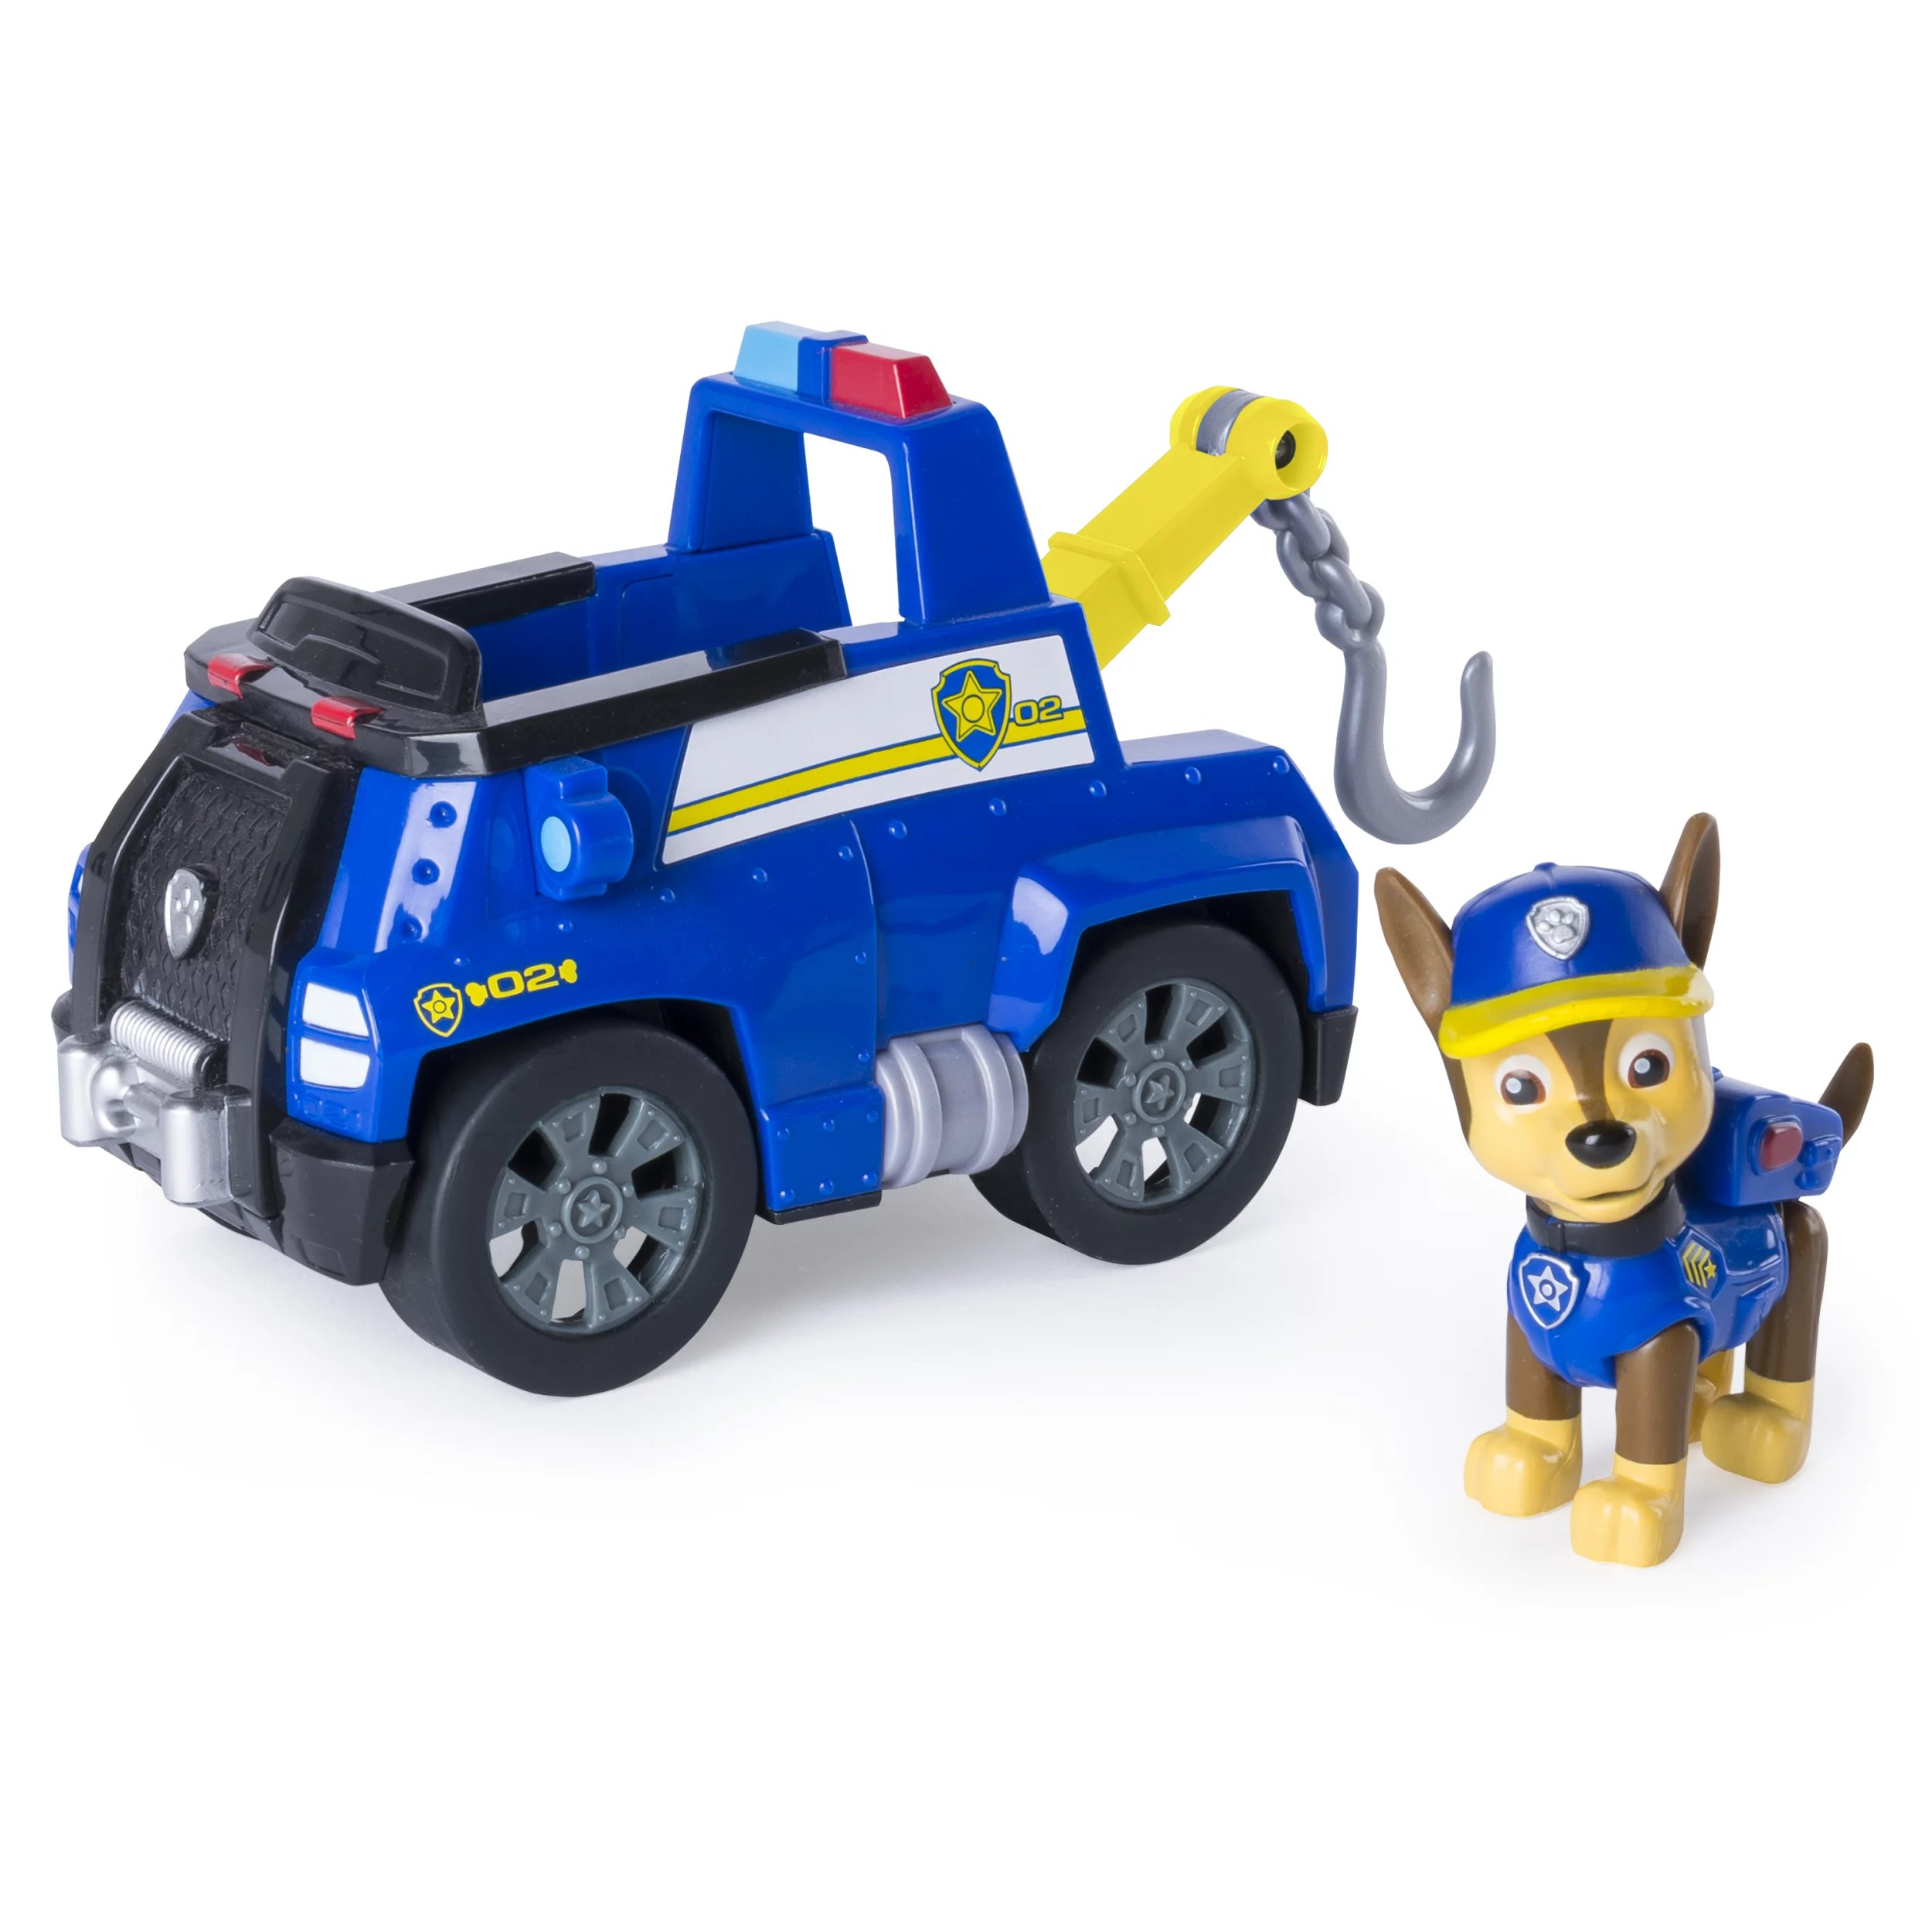 Tow Truck Paw Patrol Chase S Tow Truck Figure And Vehicle Walmart